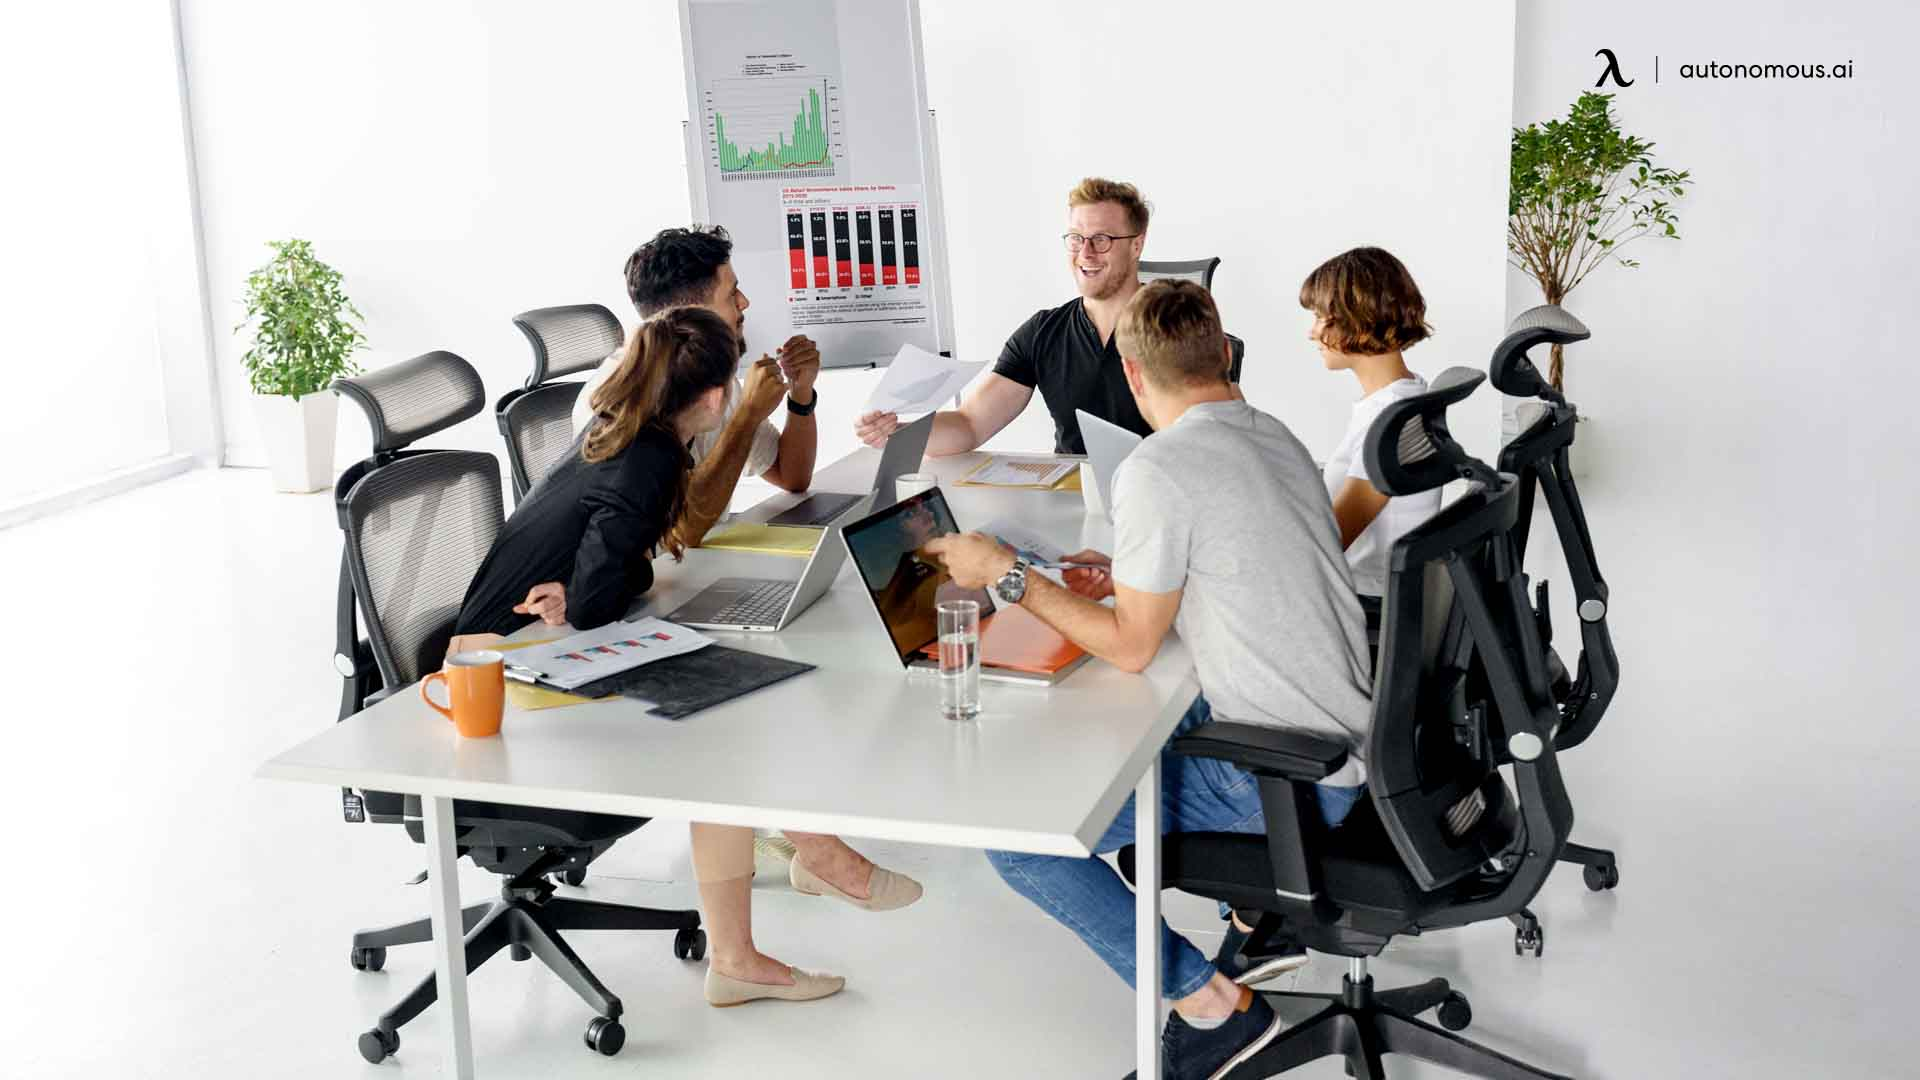 The nagging negatives in the hybrid workplace